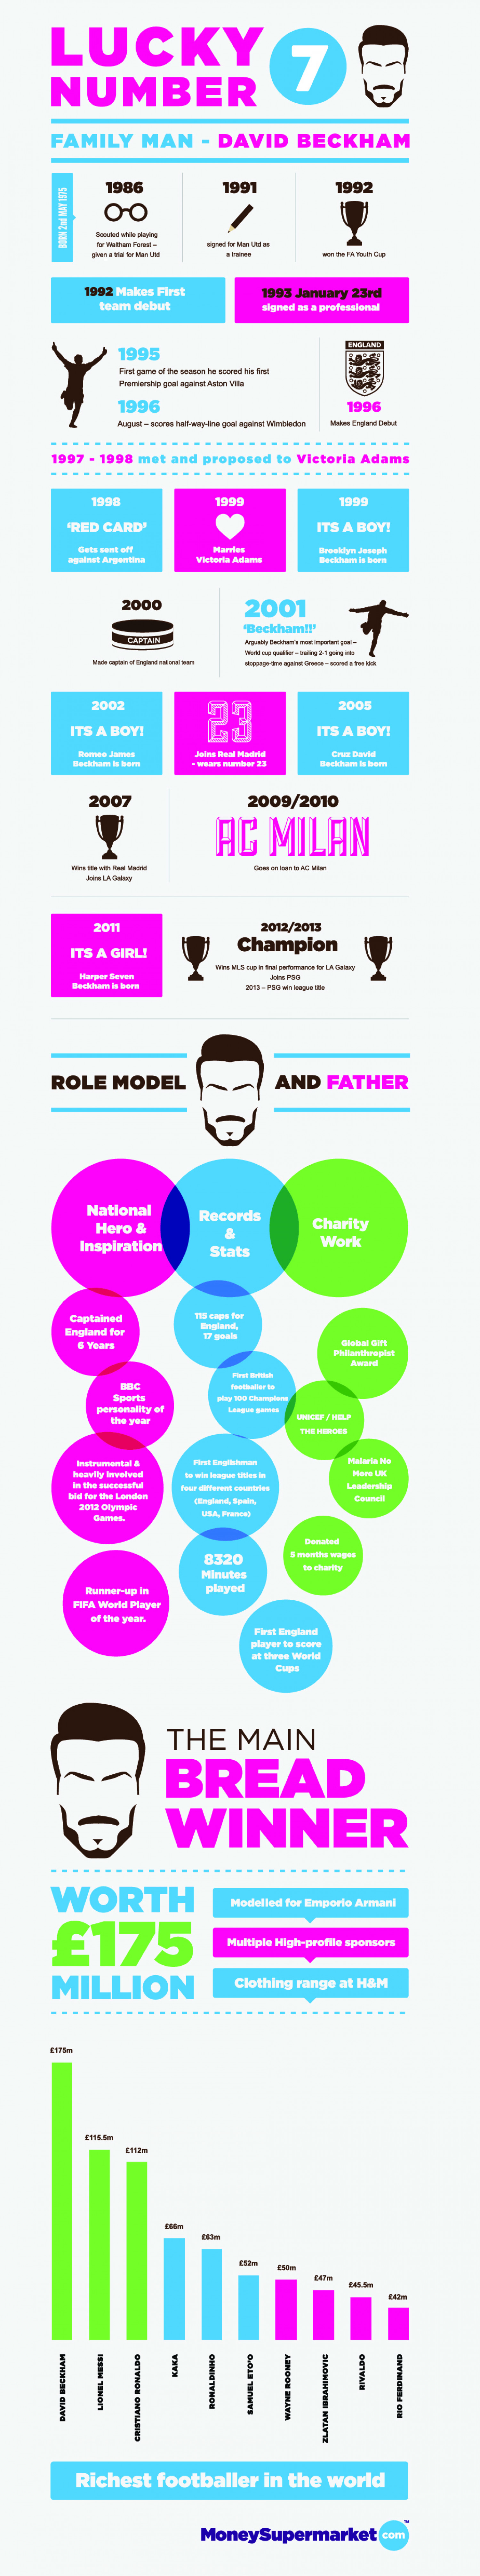 Lucky Number 7 - Family Man David Beckham Infographic